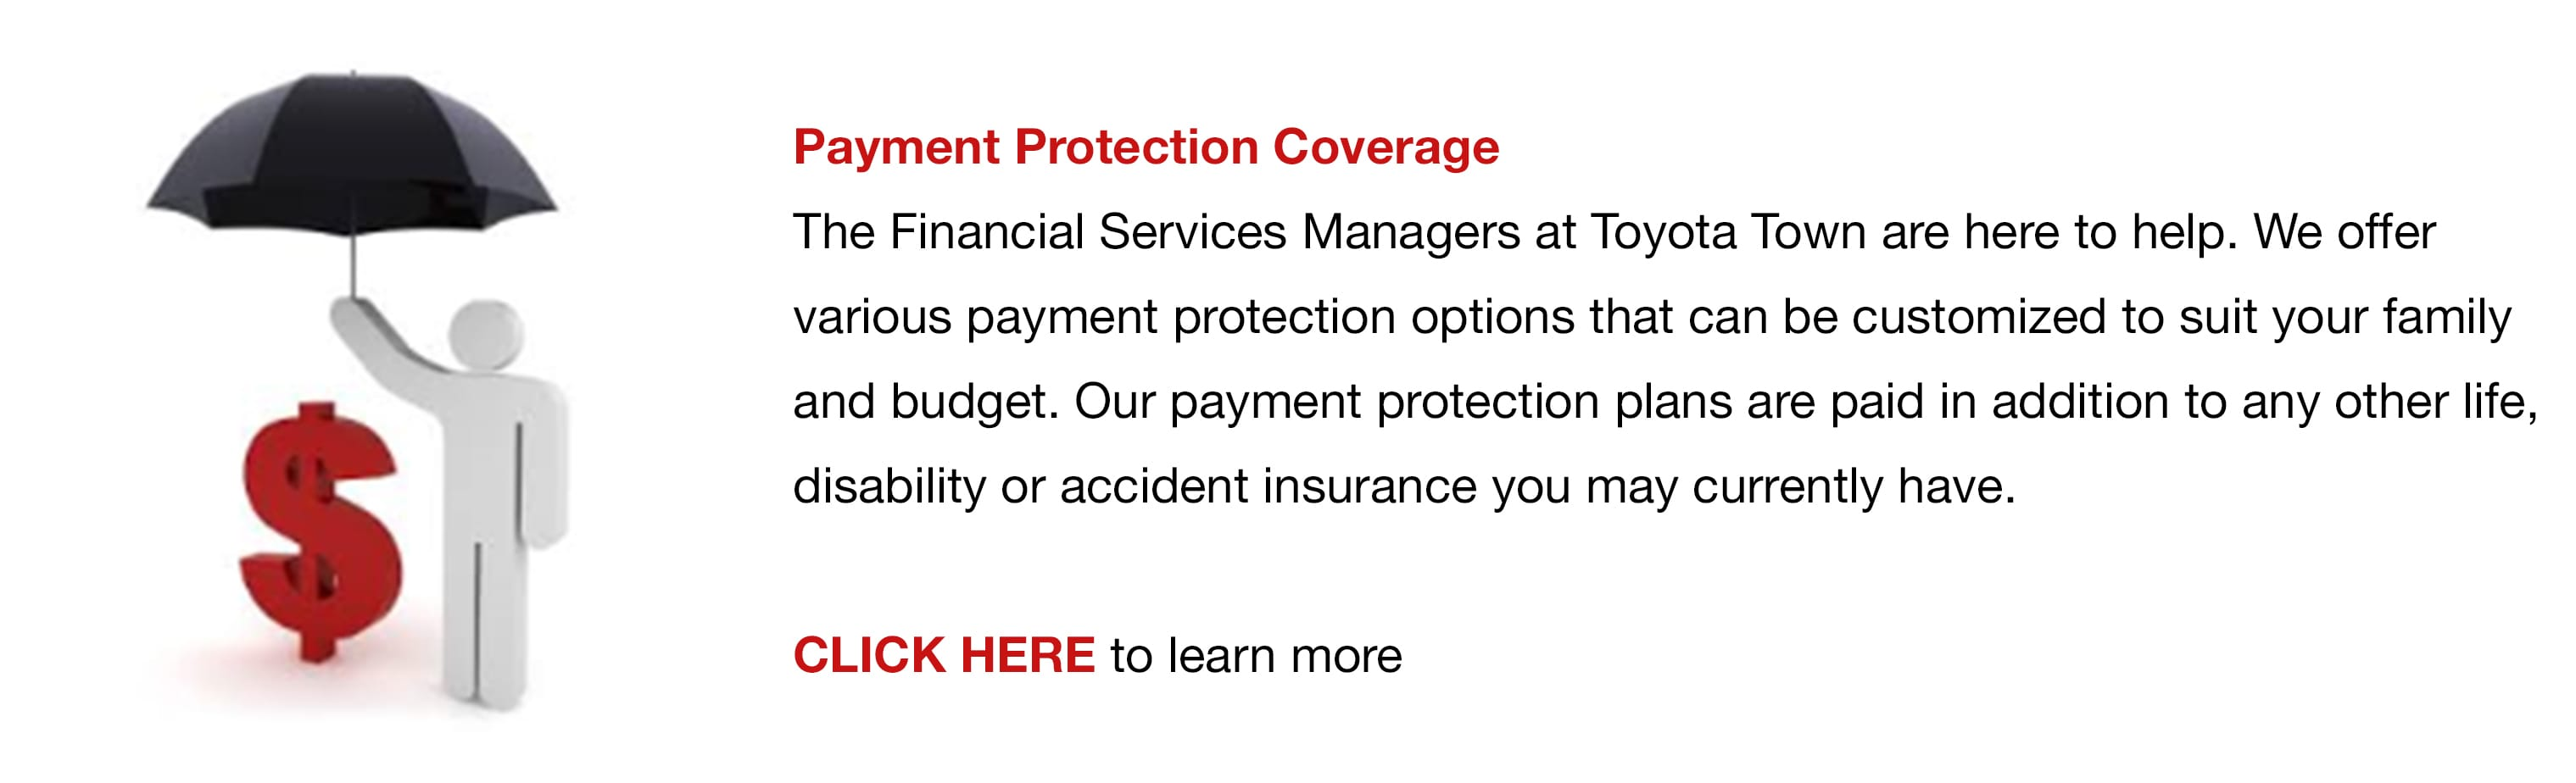 Payment Protection Coverage